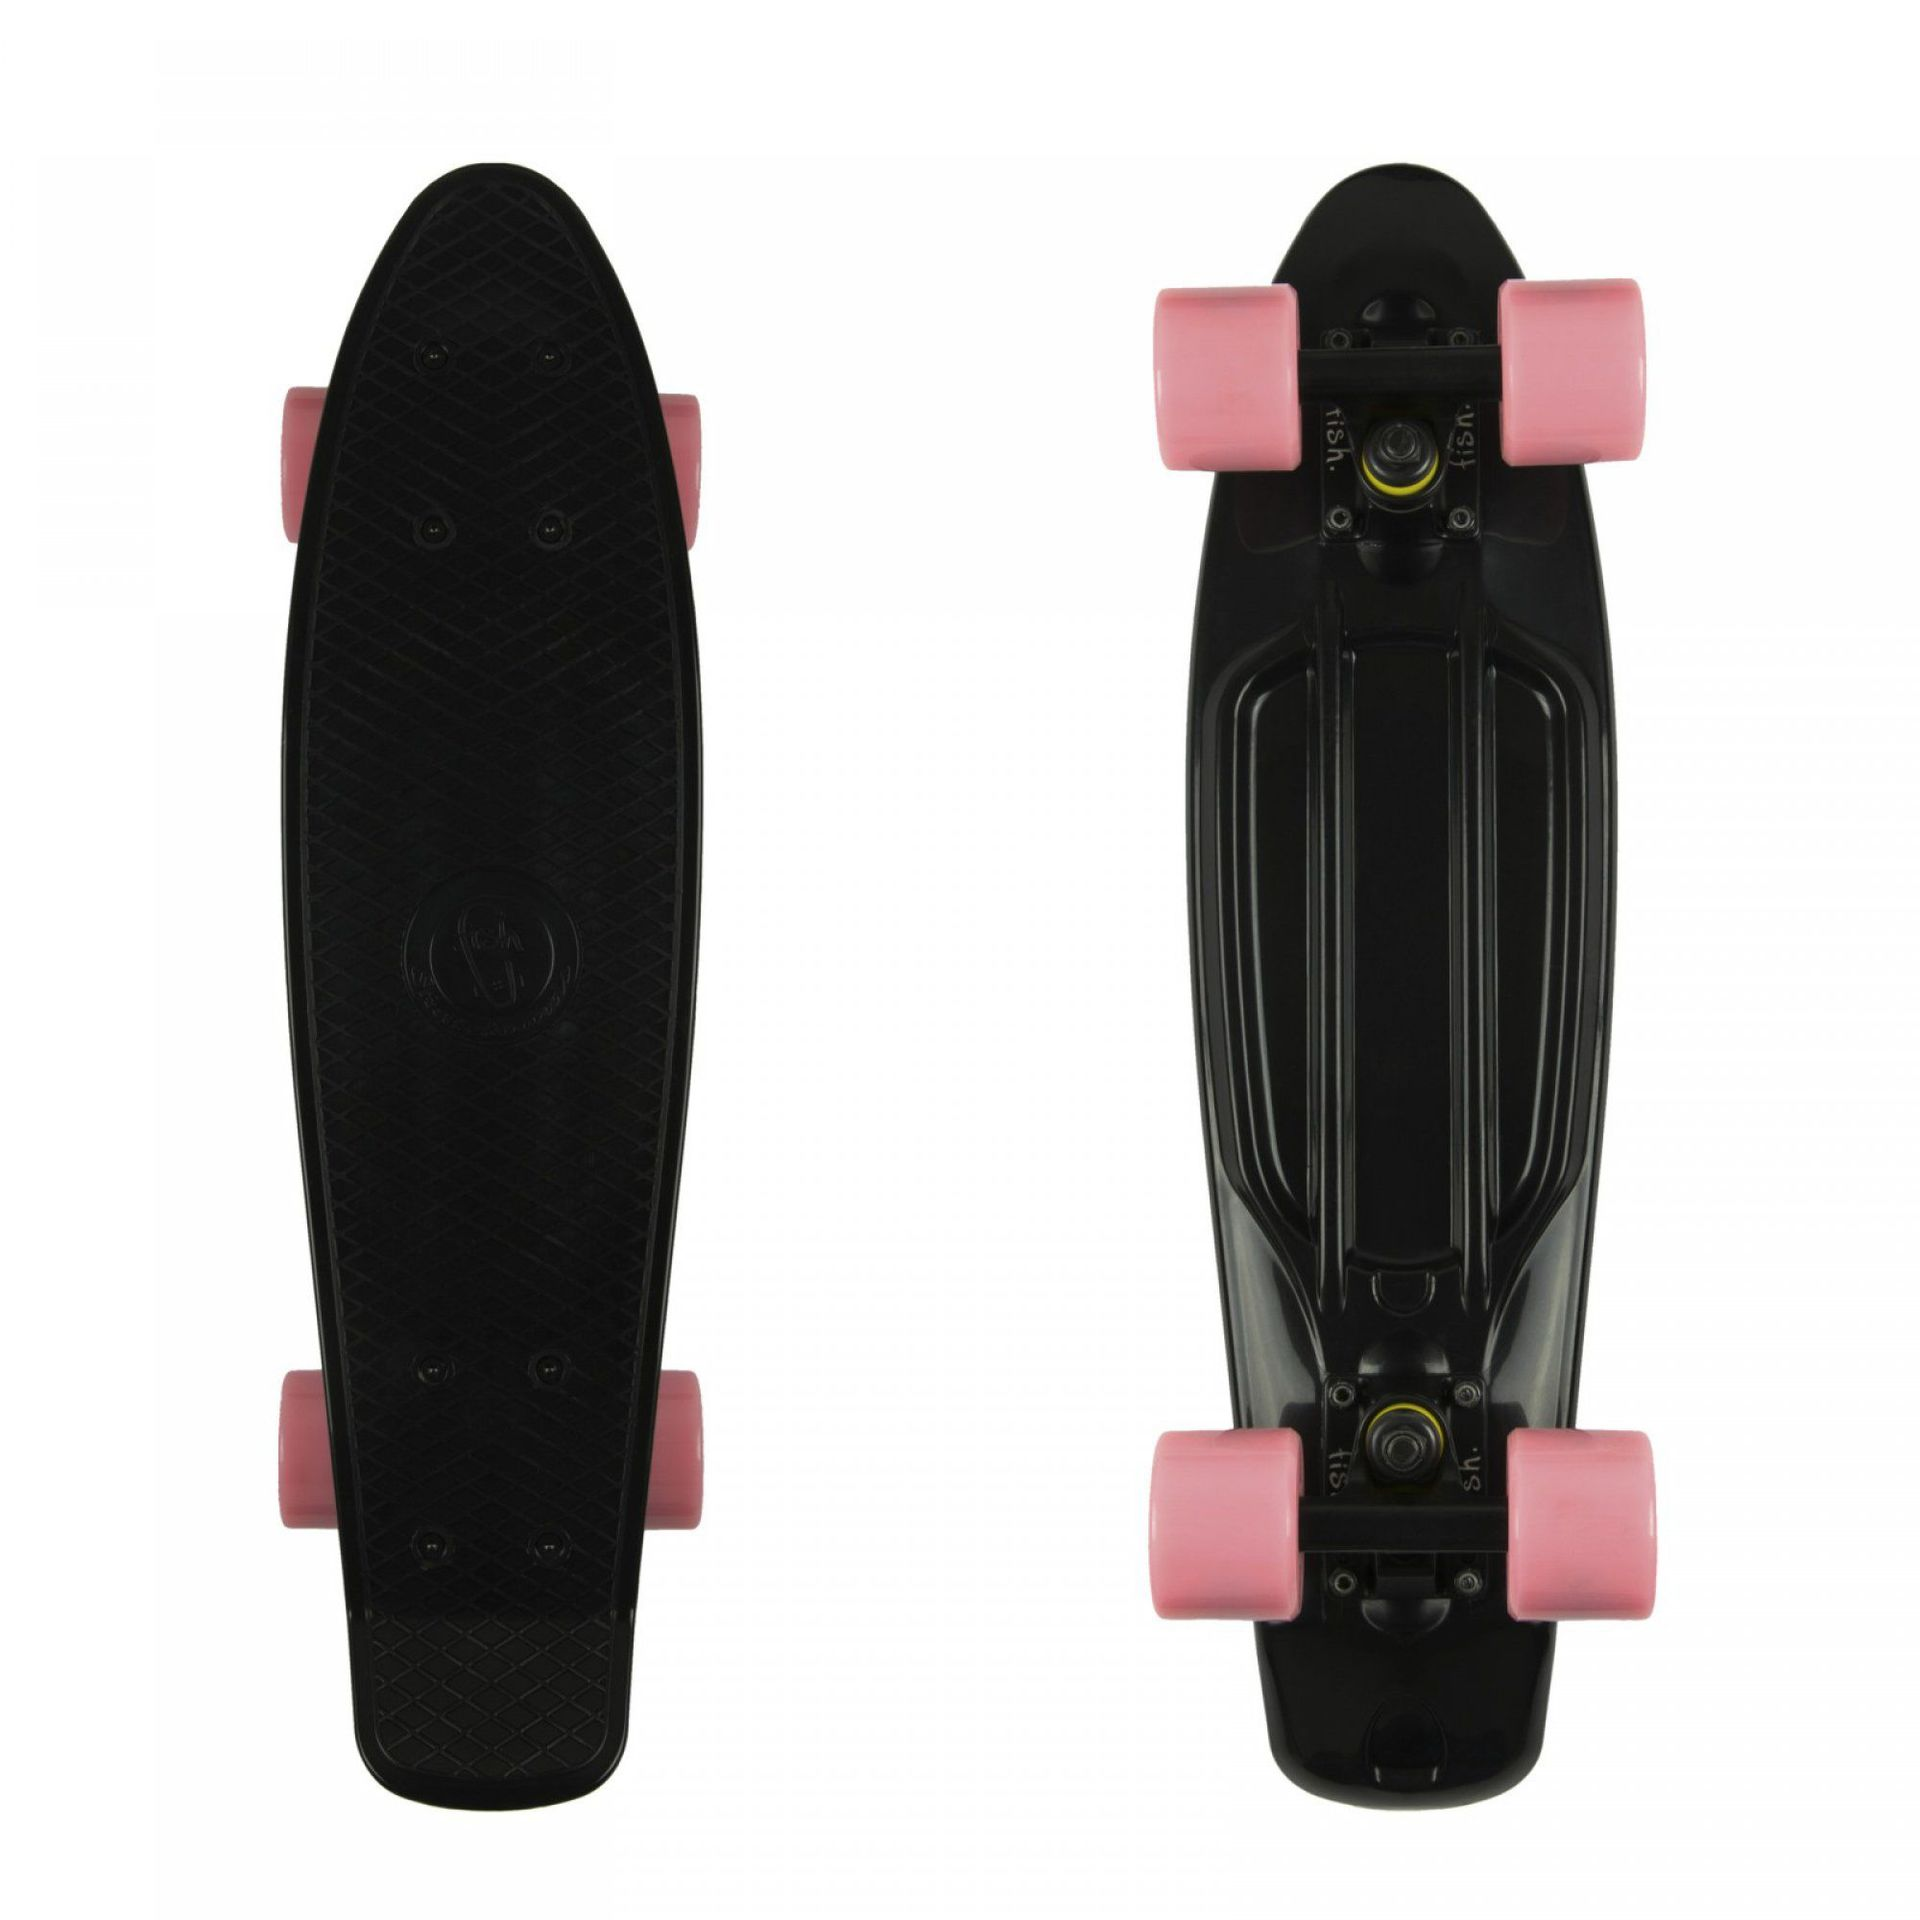 FISHBOARD FISH SKATEBOARDS CLASSIC BLACK|BLACK|SUMMER PINK 1